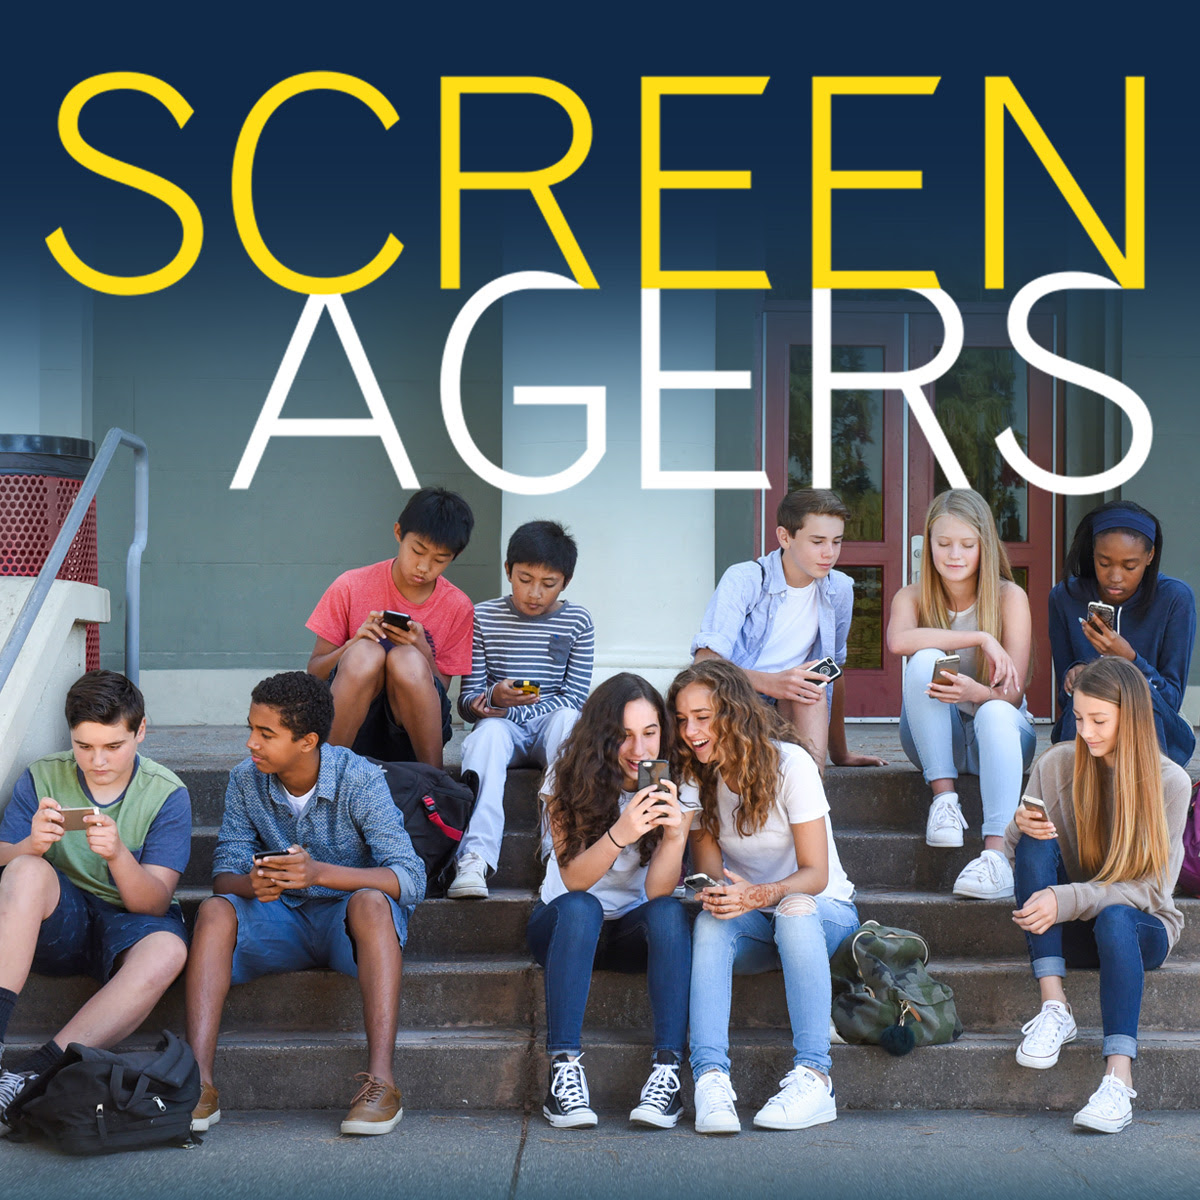 Screenagers Film Presented By Guernsey Sunrise Schools